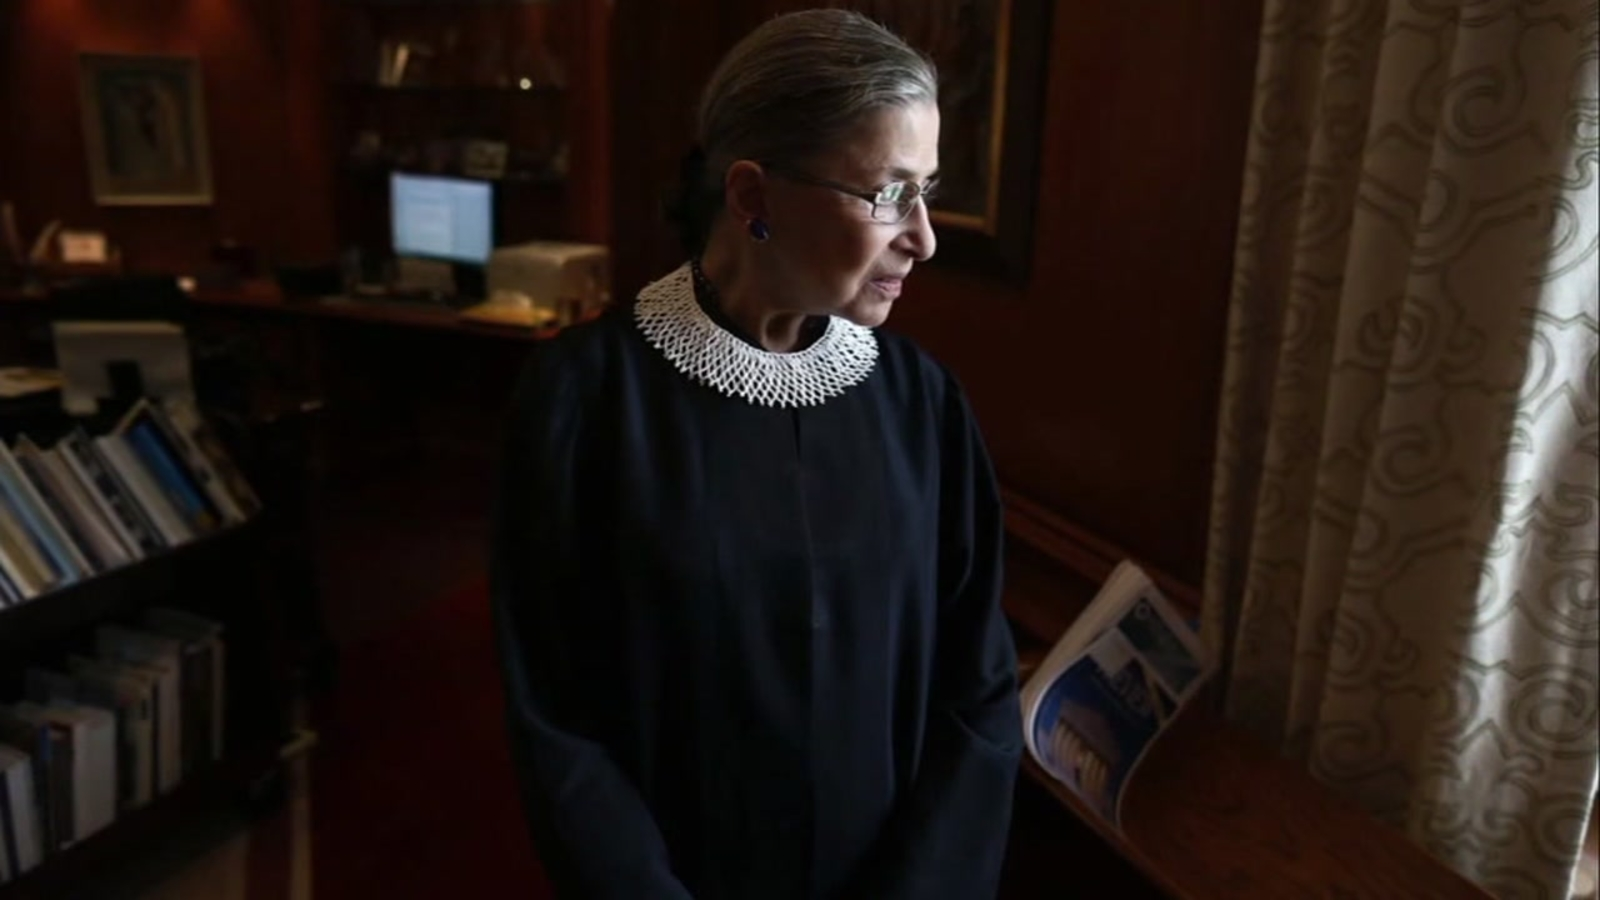 'She was my idol': Bay Area legal community shares memories of Supreme Court icon Justice Ruth Bader Ginsburg